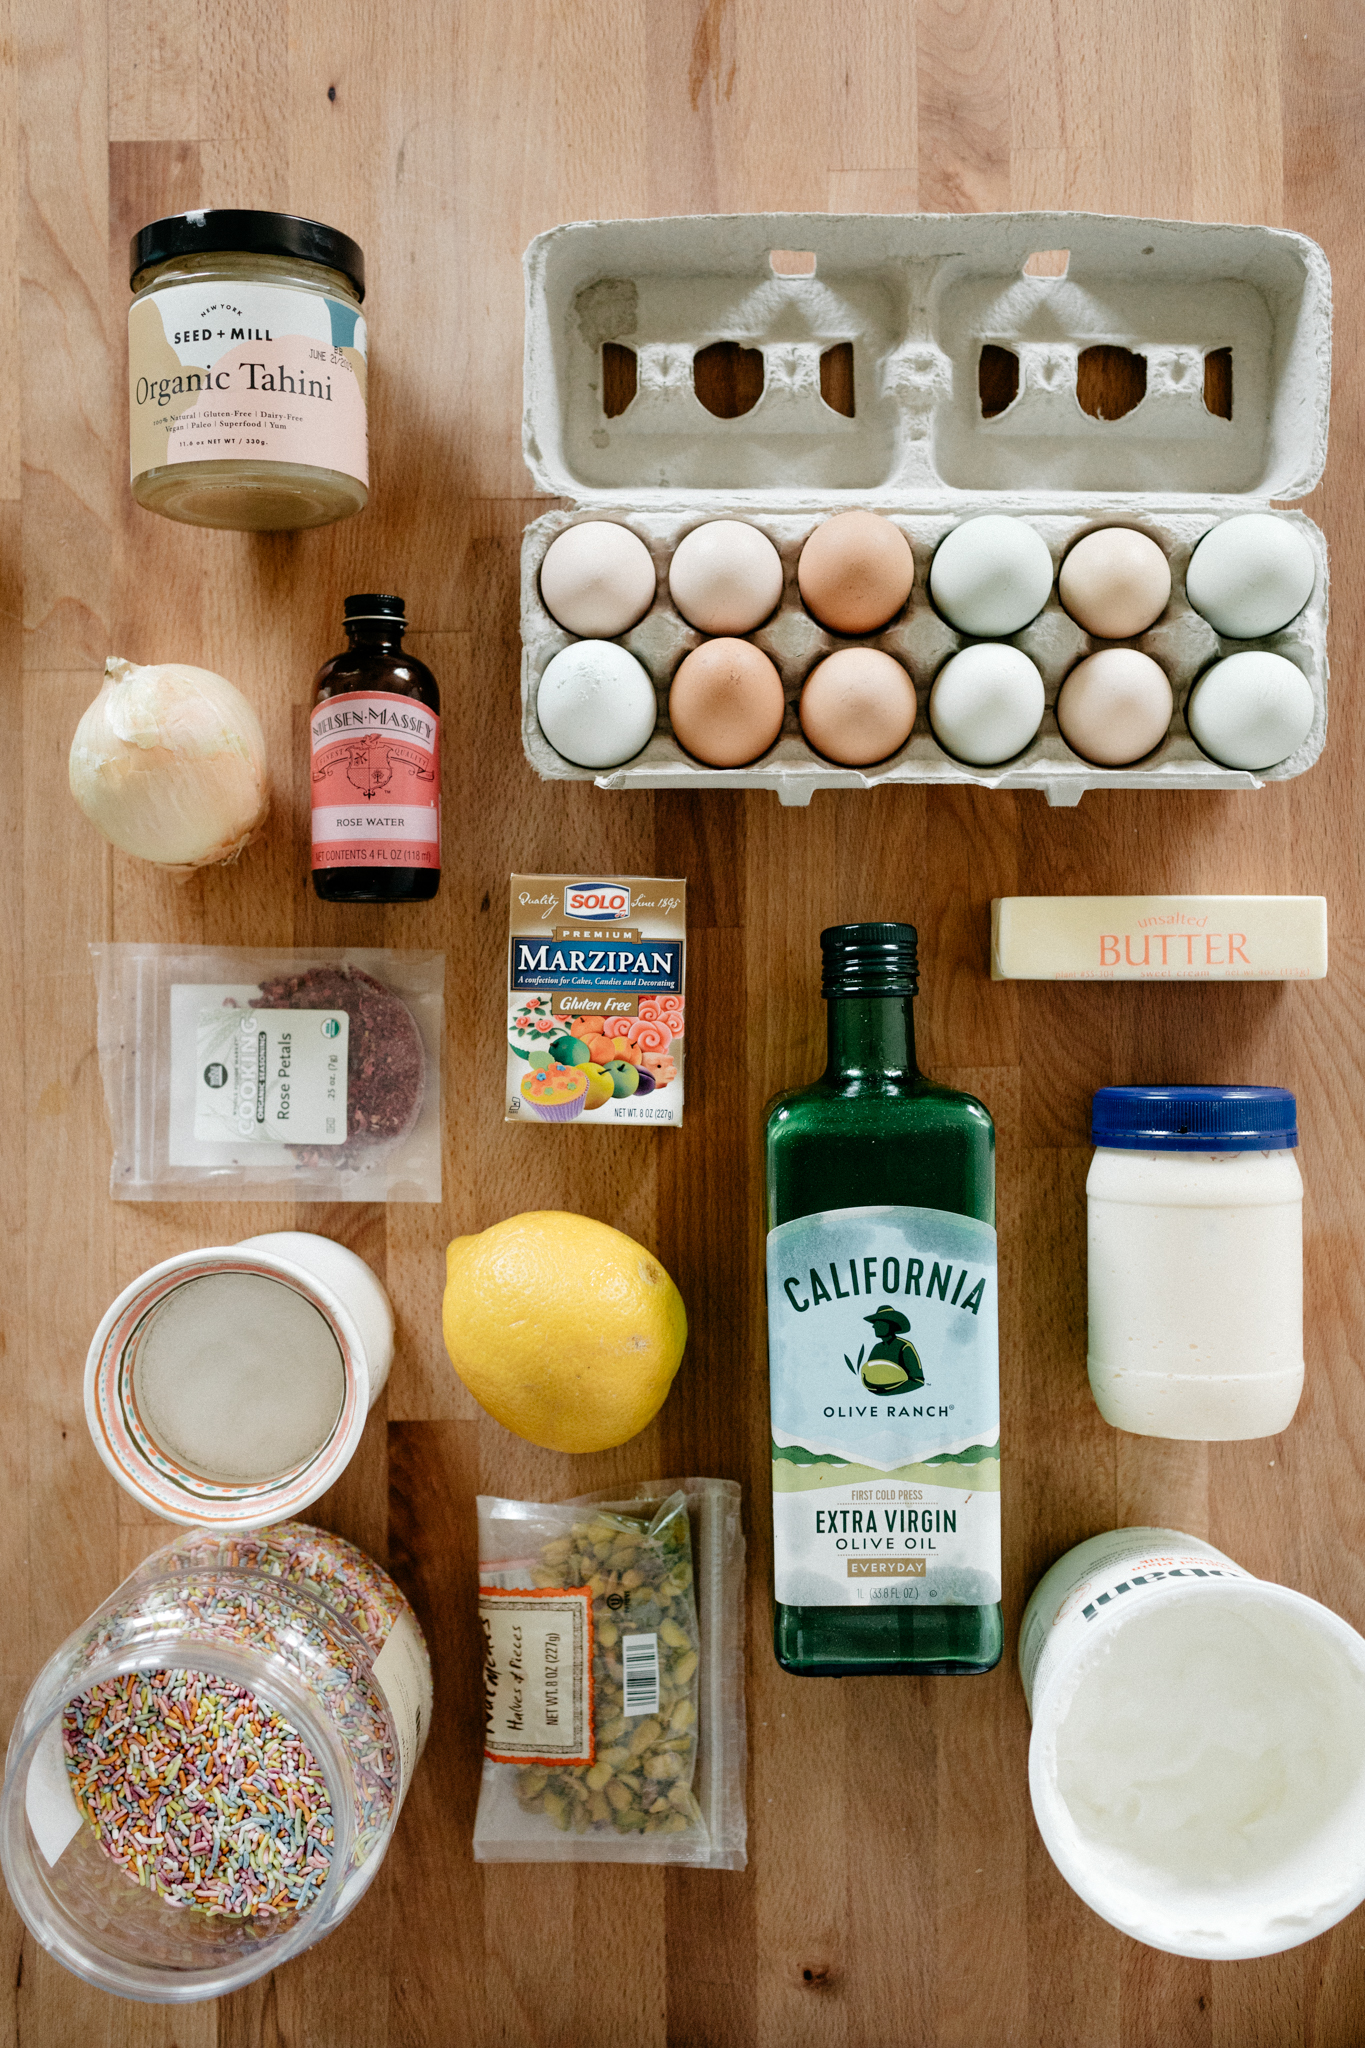 pineapple-collaborative-pine-for-pantry-molly-yeh-31.jpg